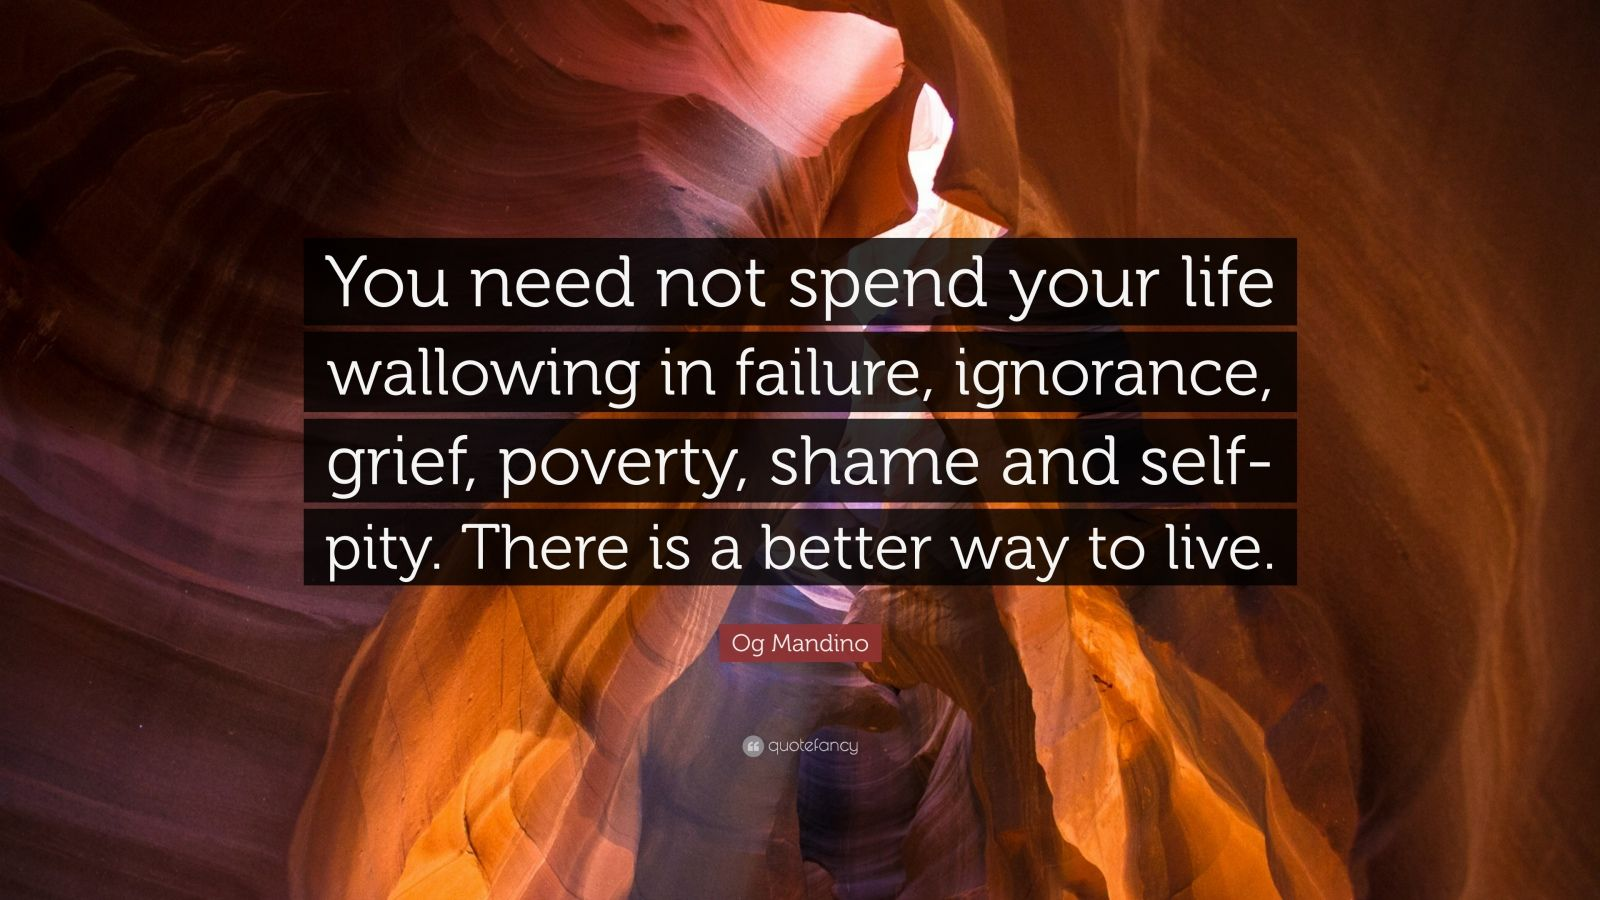 """Og Mandino Quote: """"You need not spend your life wallowing in failure, ignorance, grief, poverty, shame and self-pity. There is a better way to live."""""""